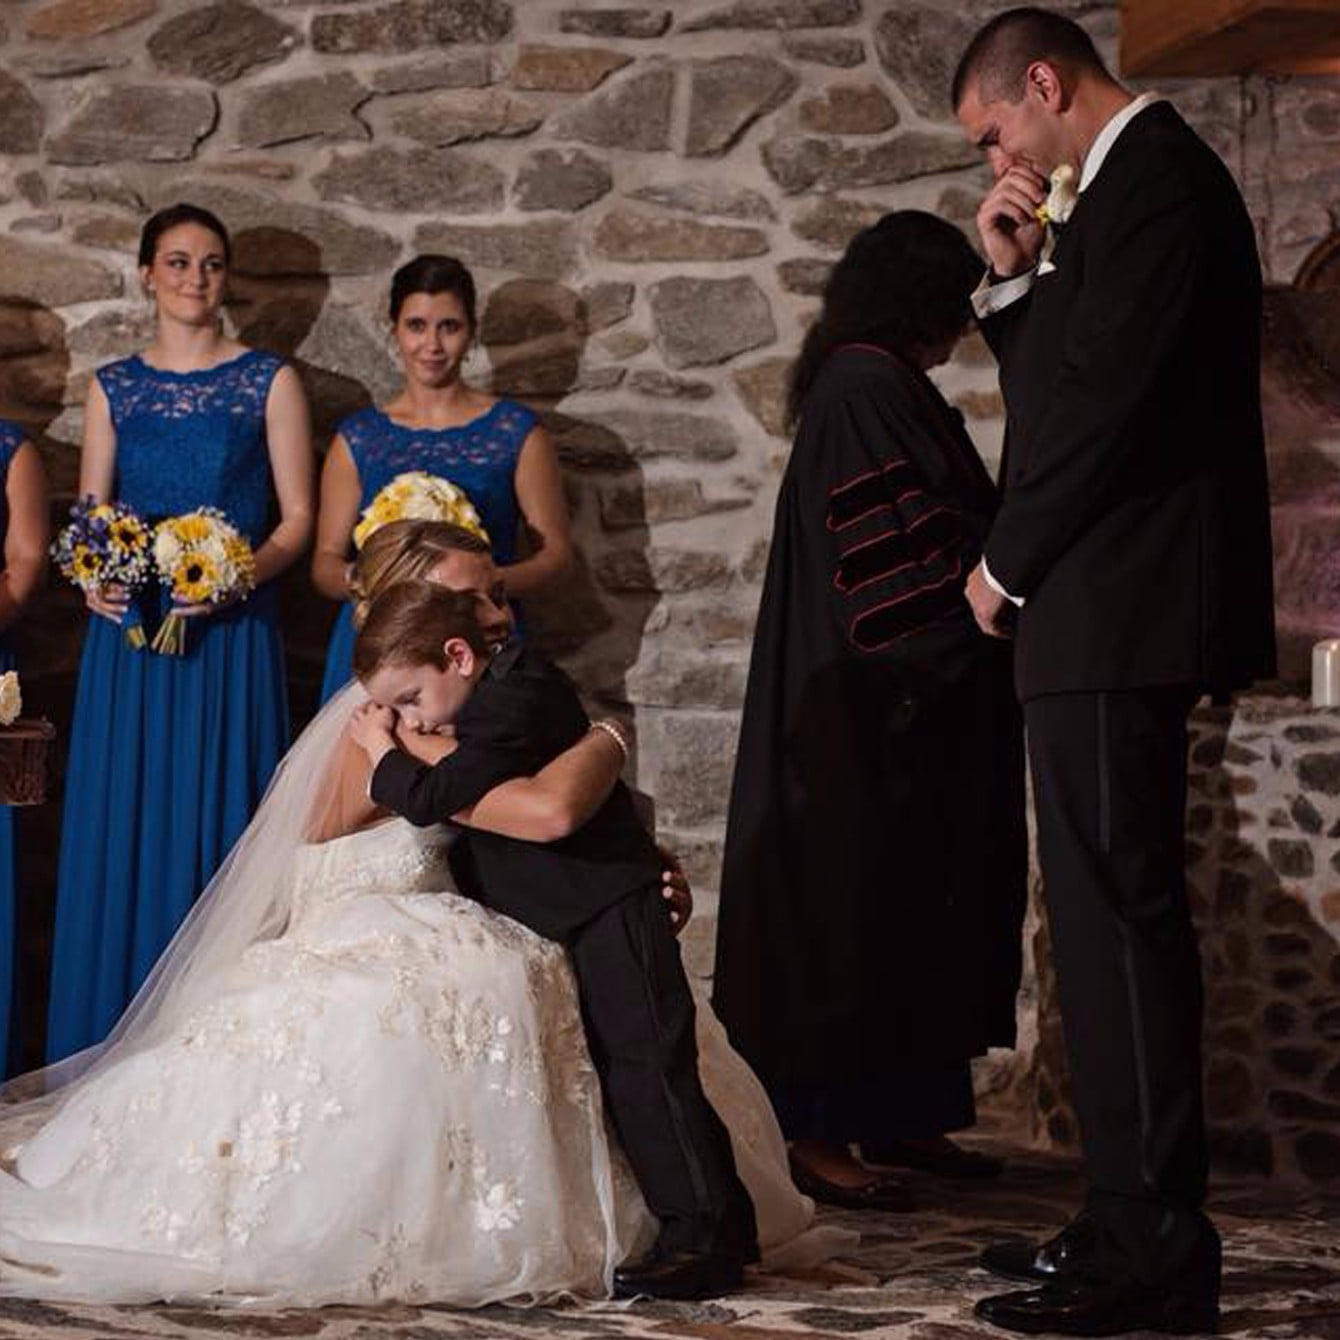 Stepmoms Wedding Vows To Her Stepson And Coparents Popsugar Family